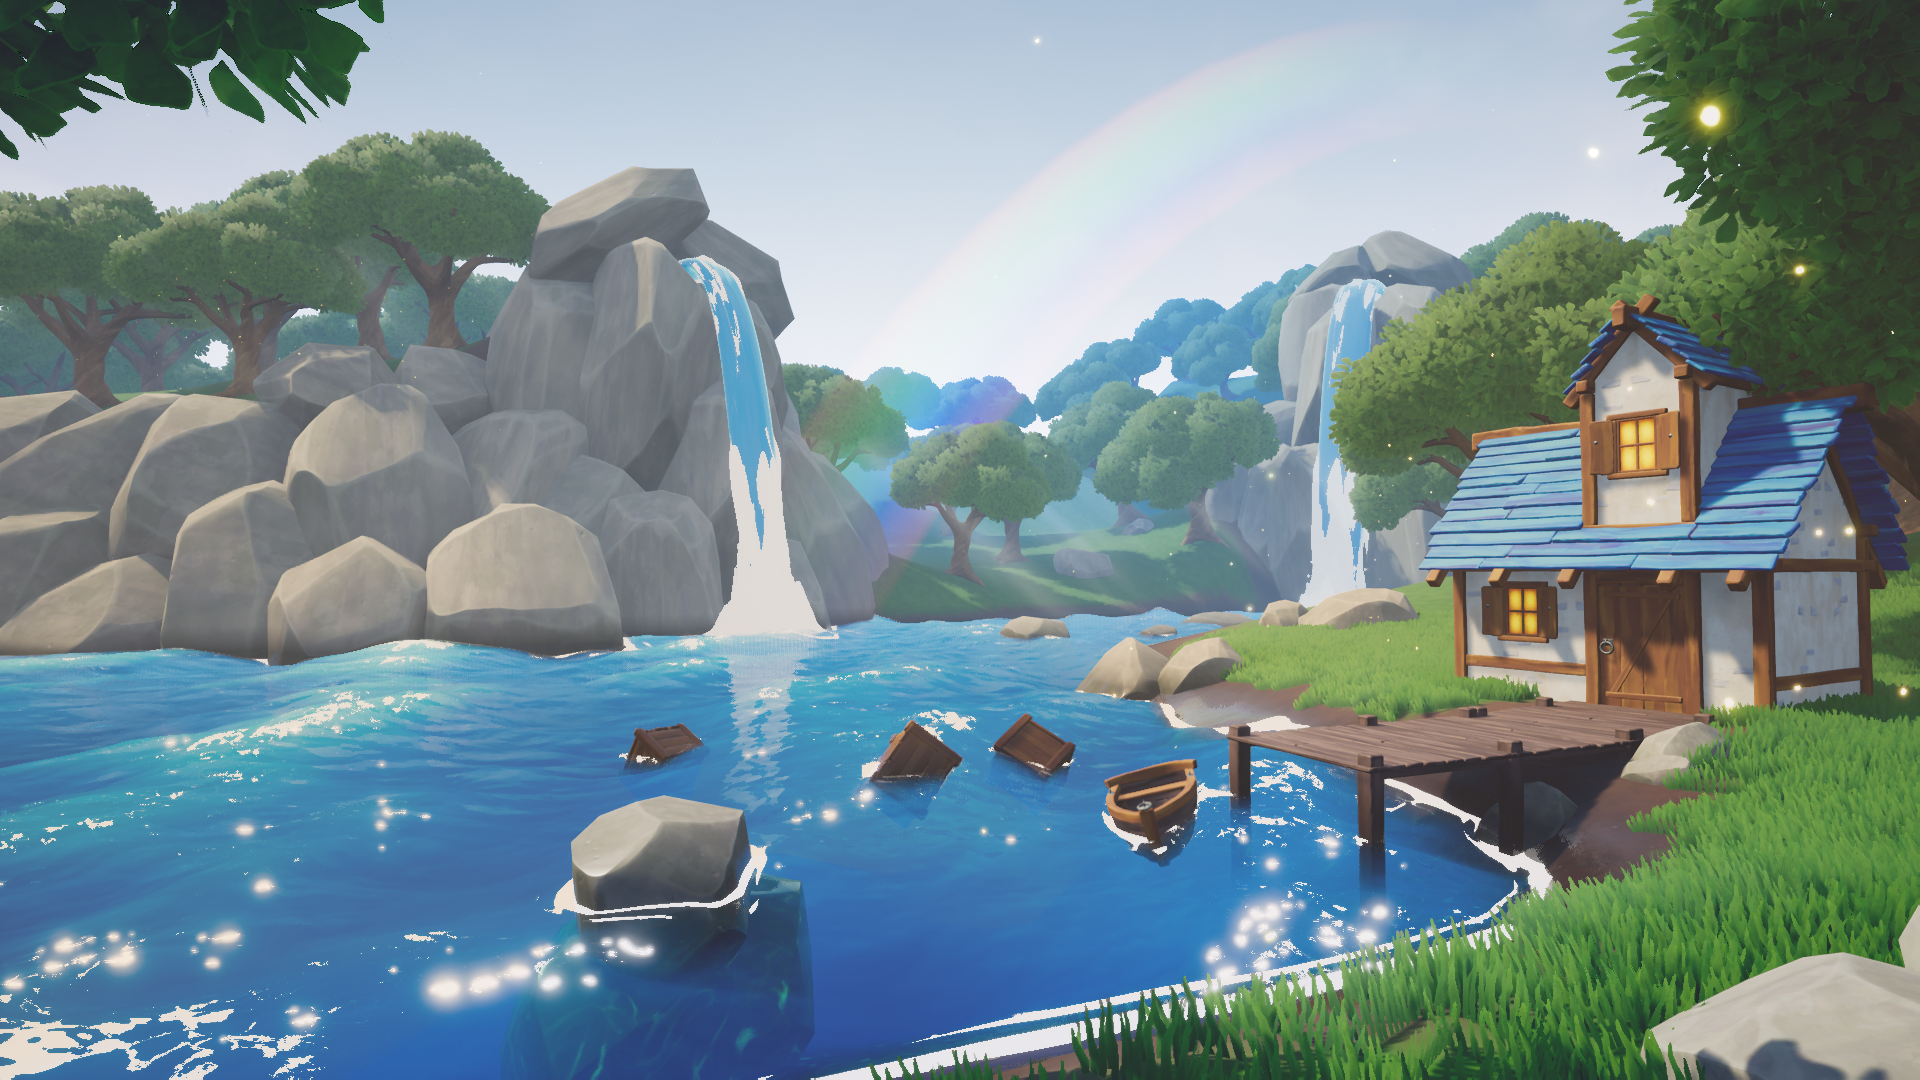 Cartoon Water Shader by Kloki in Materials - UE4 Marketplace